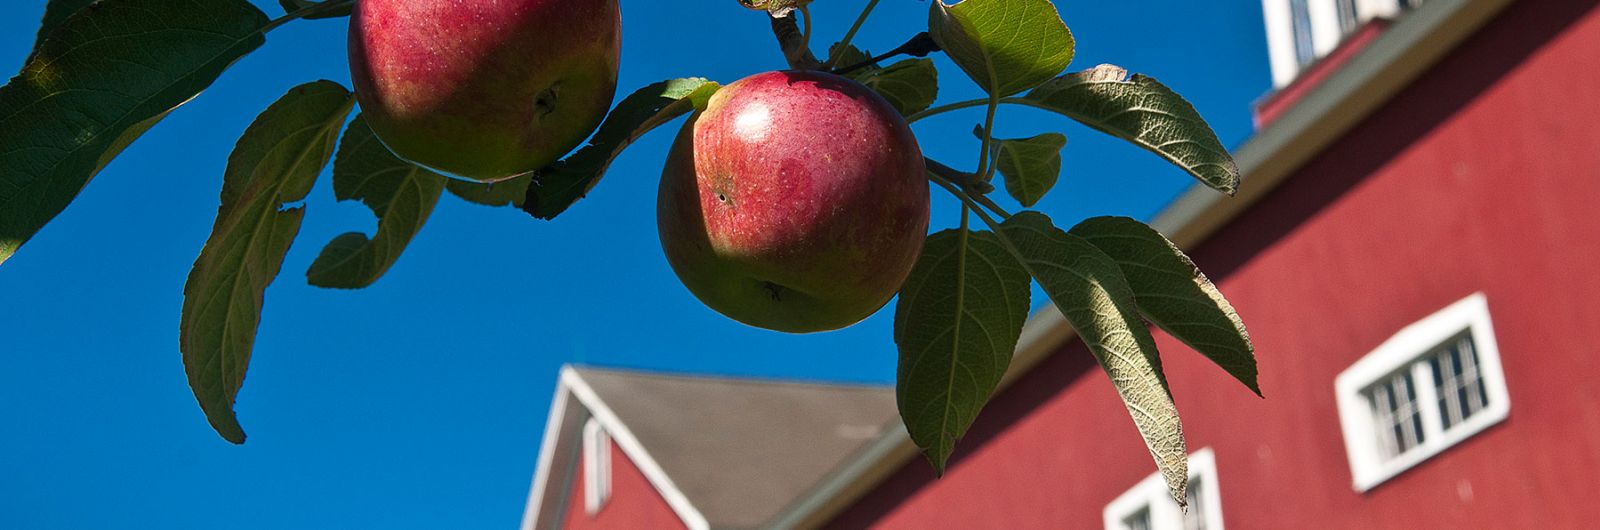 Cold Spring Orchard barn and apple tree